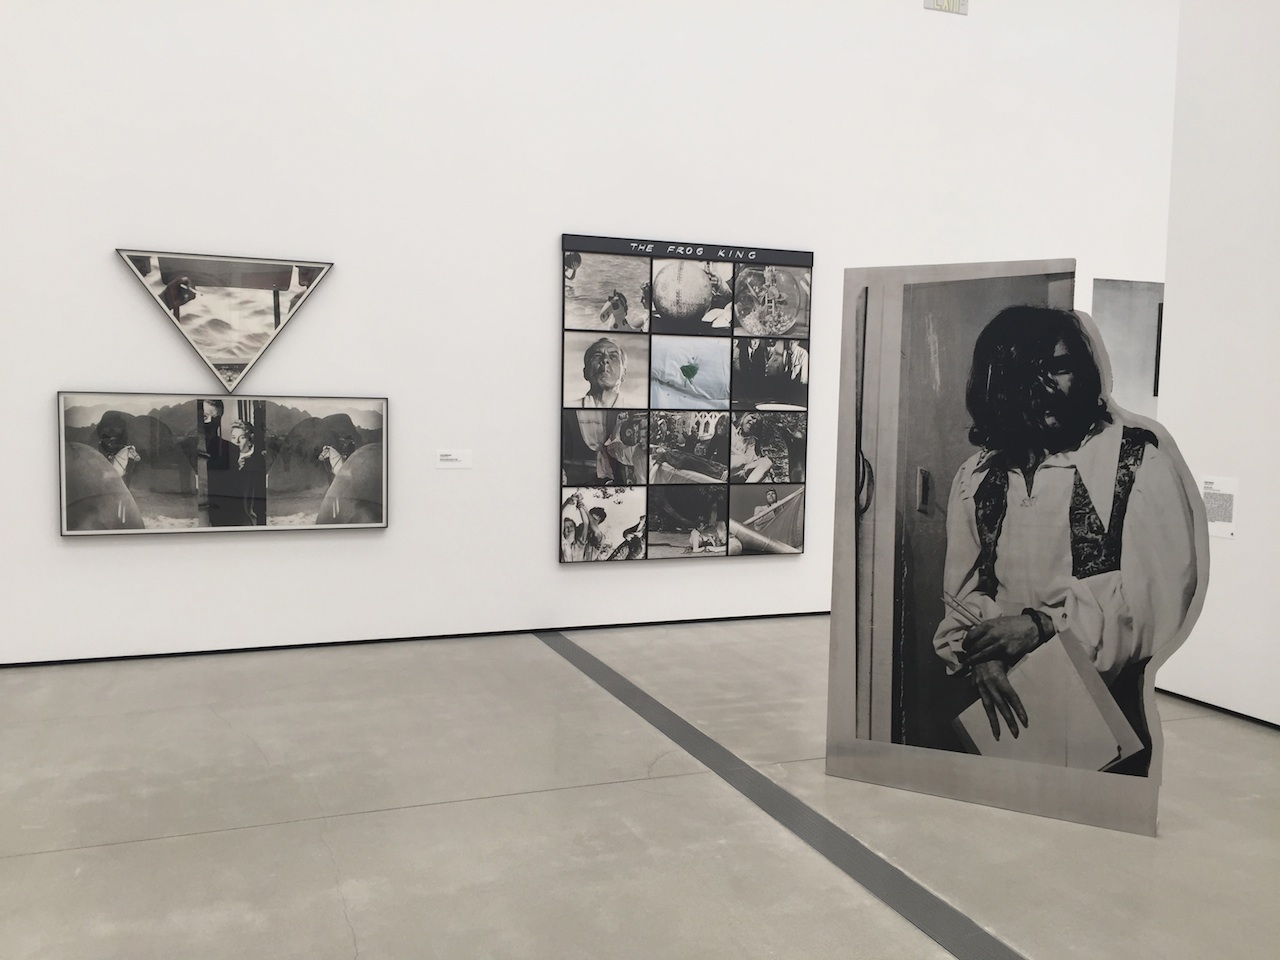 John Baldessari and Cady Noland.